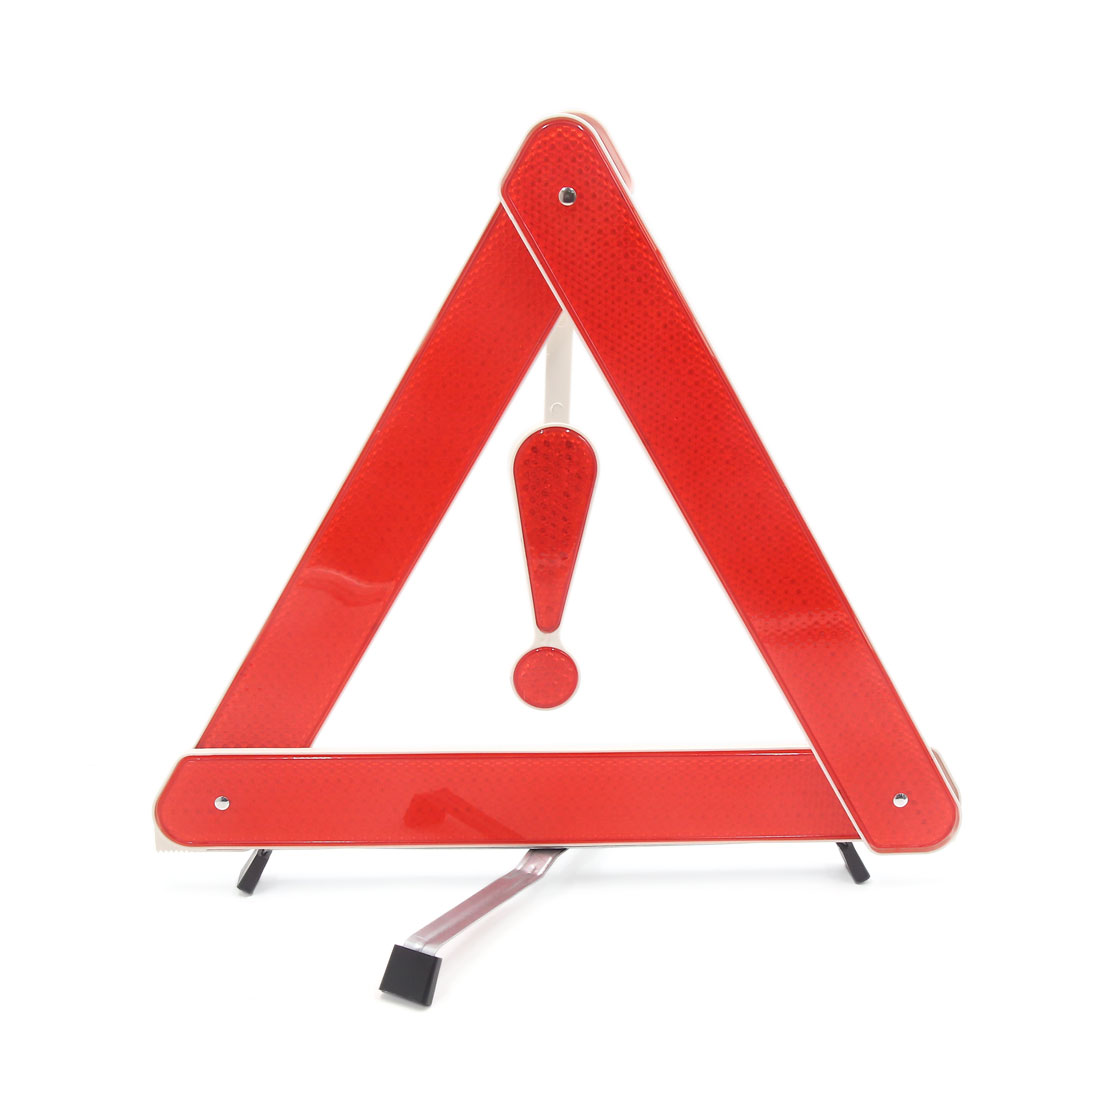 Triangle Foldable Reflective Safety Emergency Roadside Parking Sign for Car